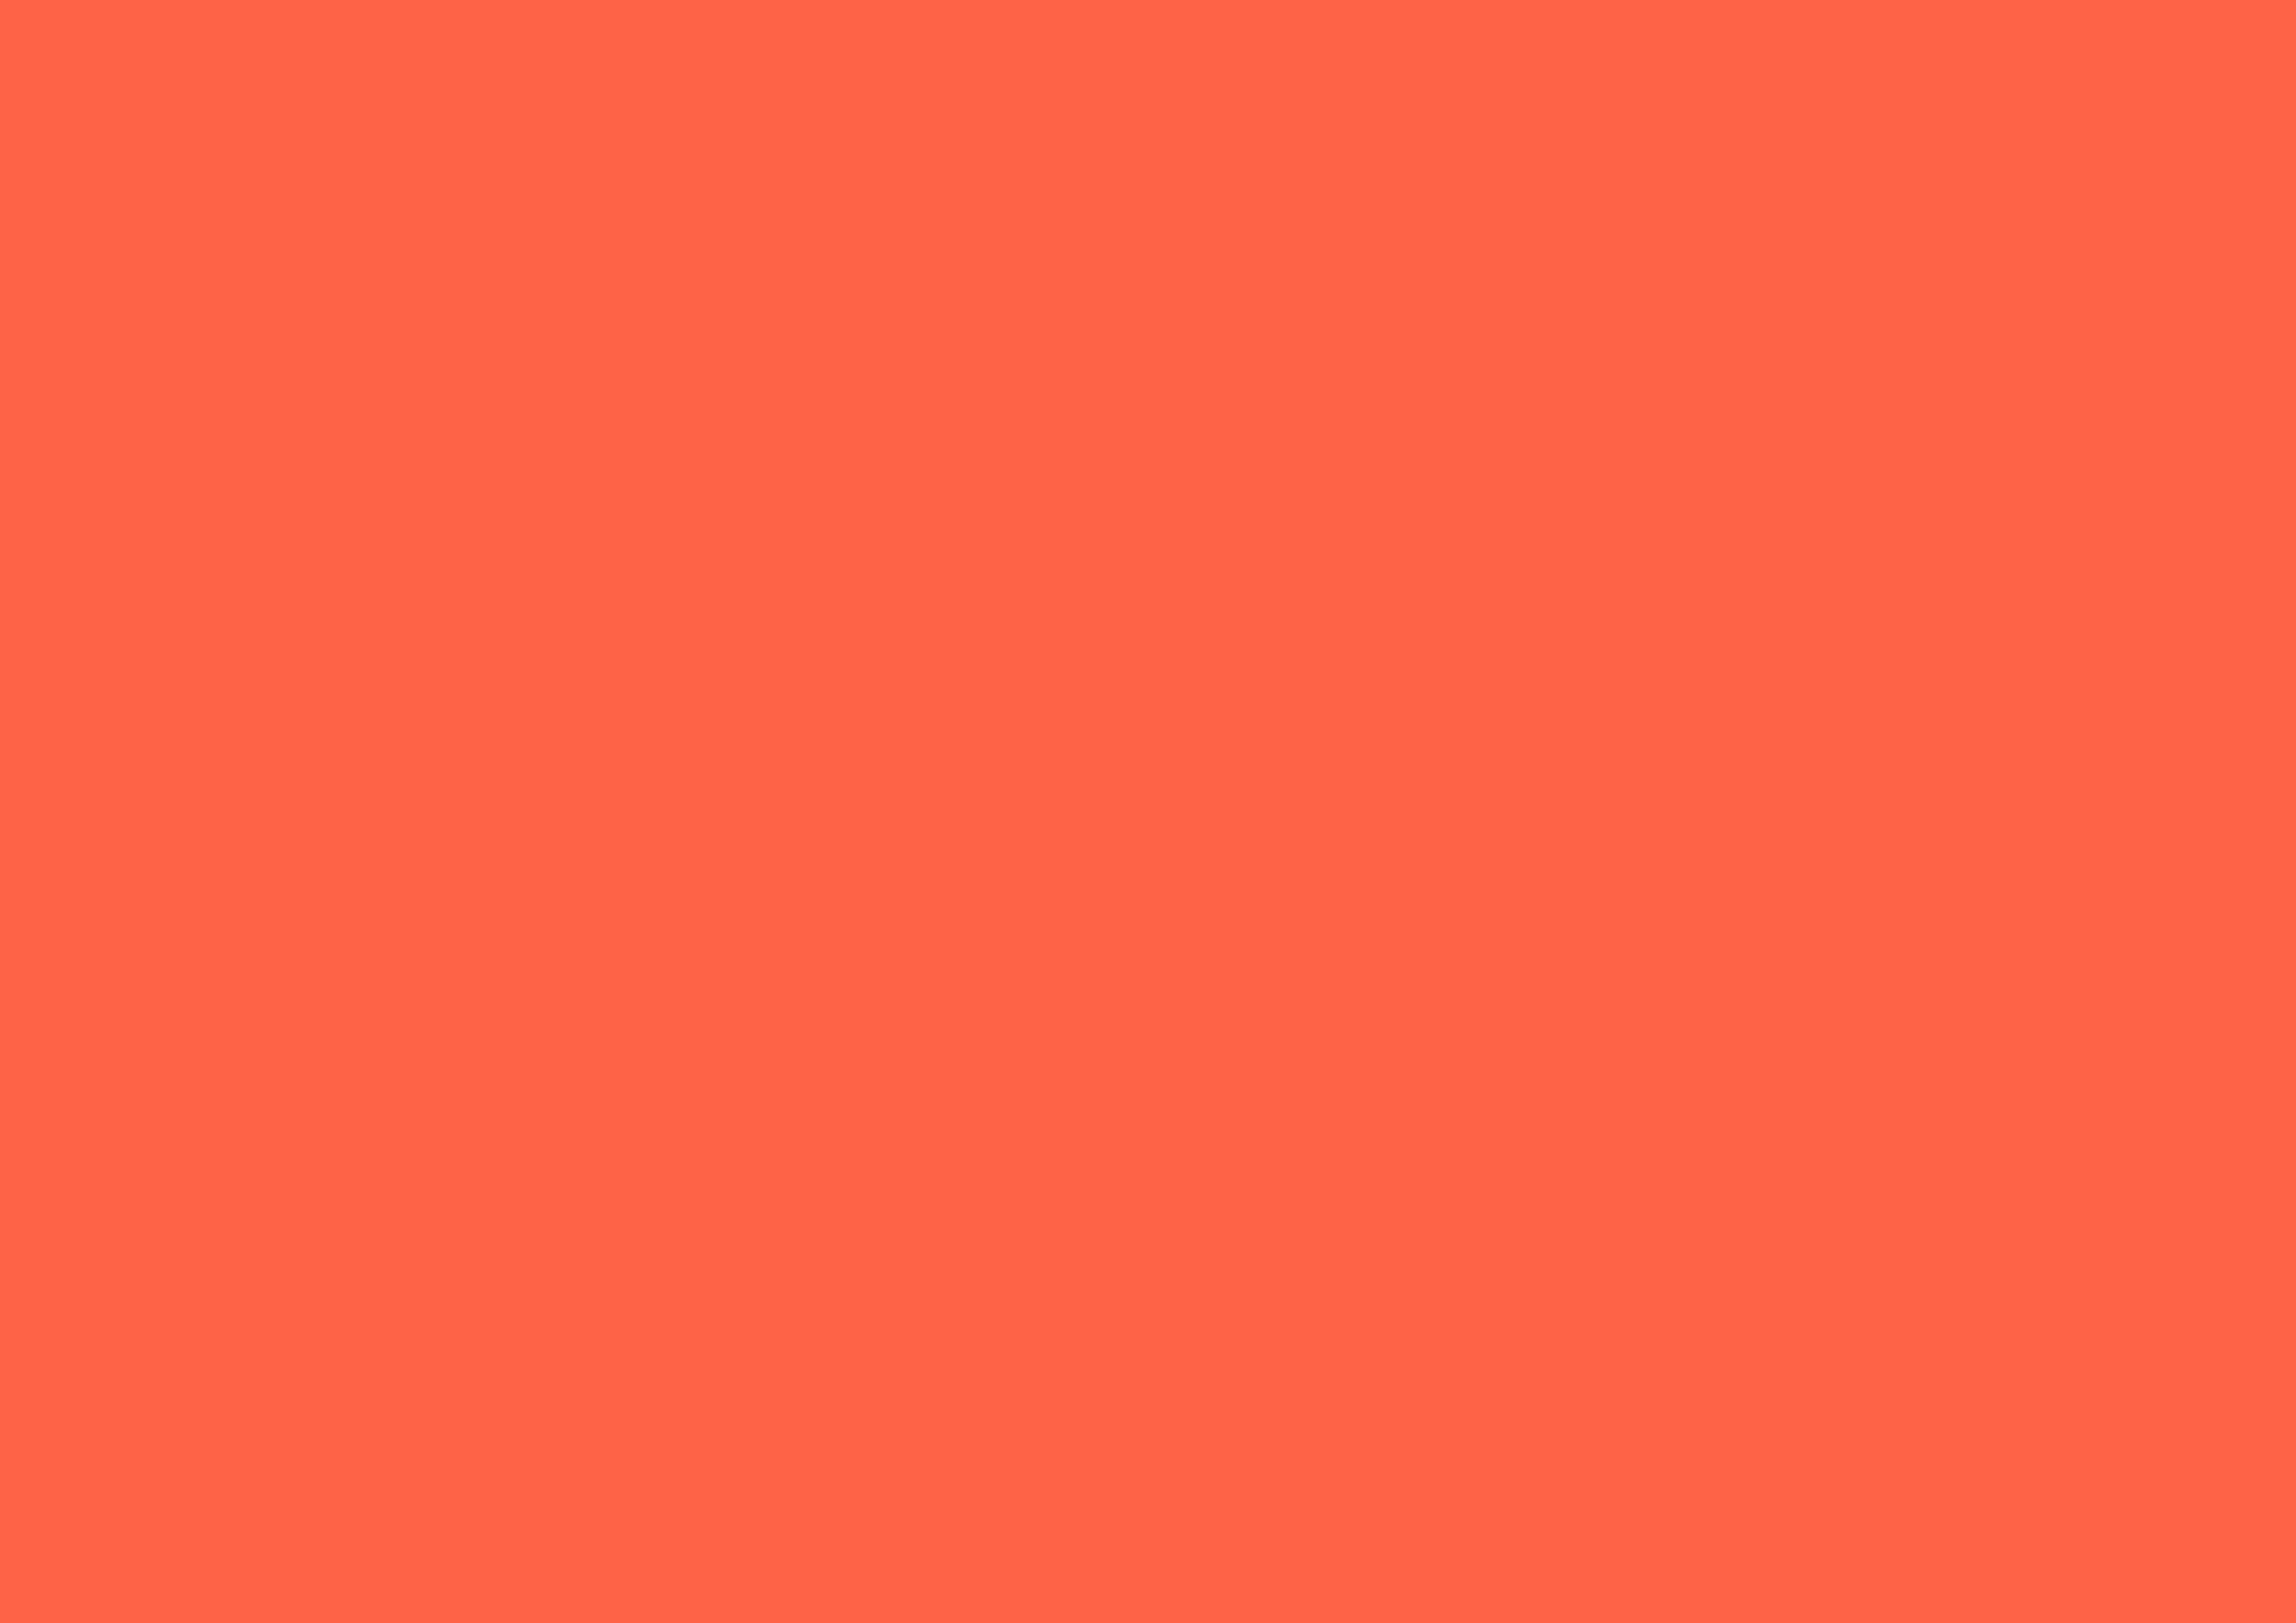 3508x2480 Tomato Solid Color Background